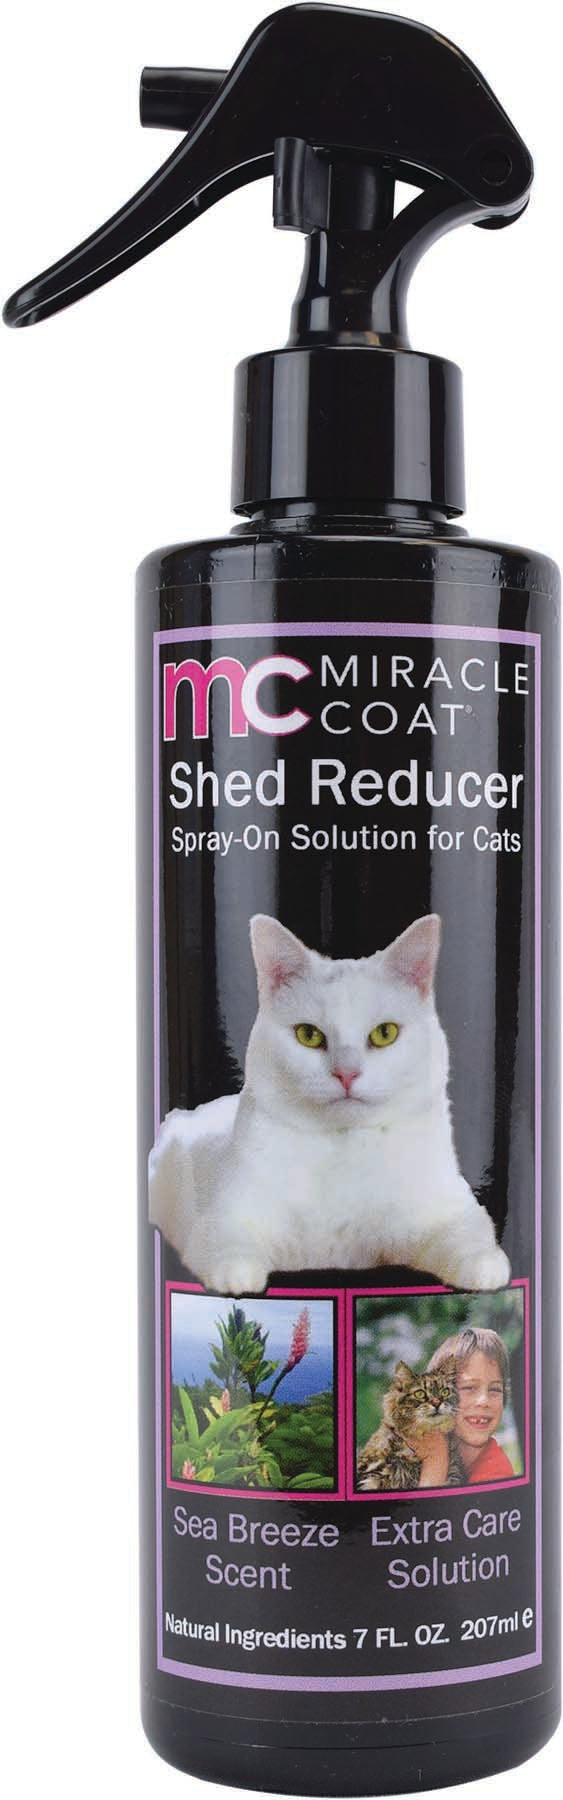 Shed Reducer for Cats